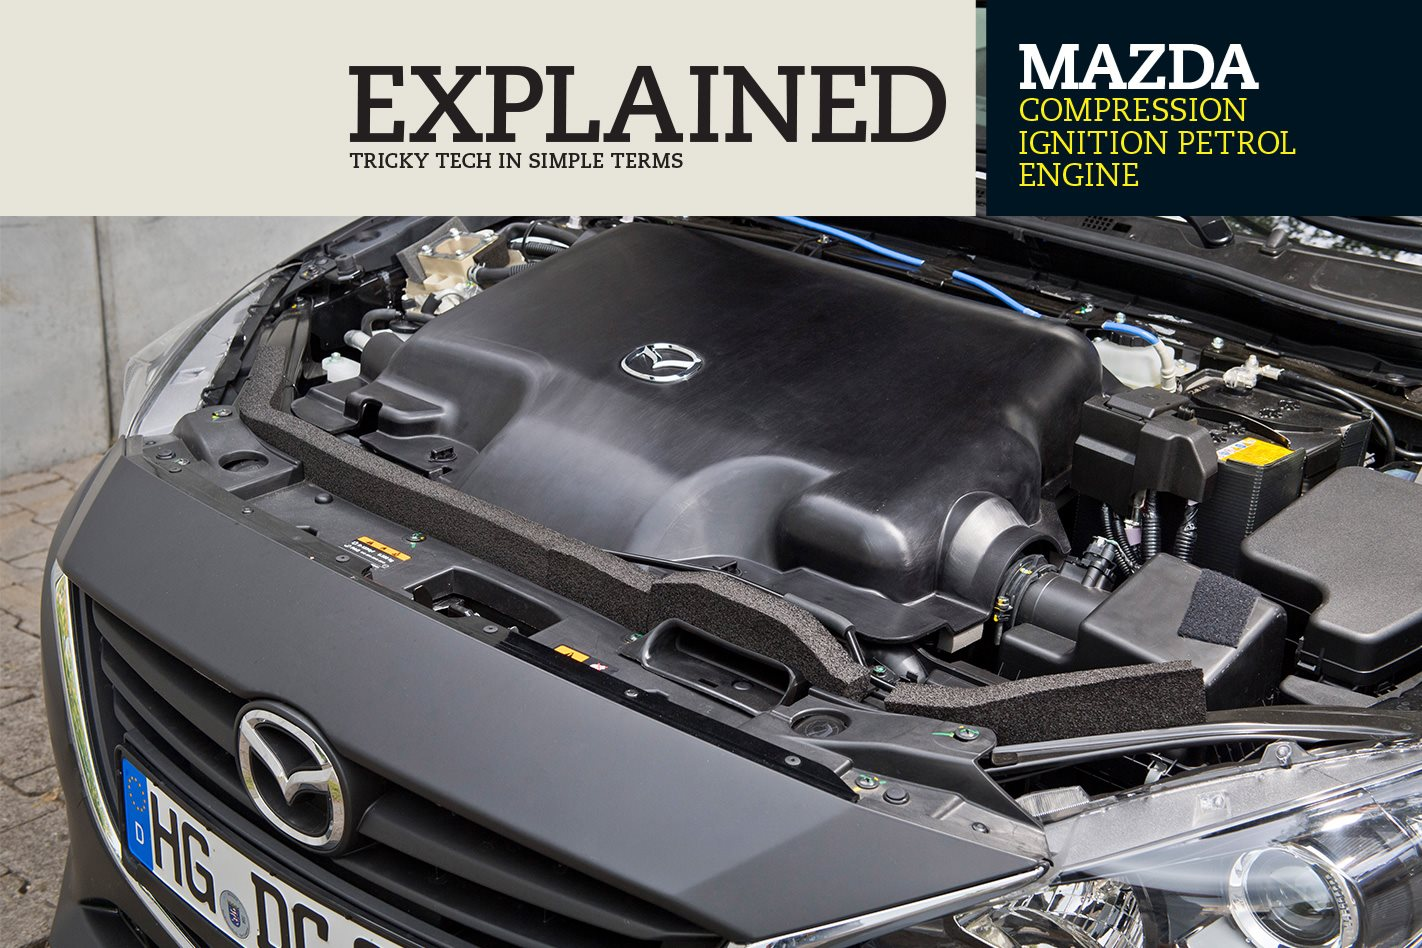 to introduce promises engine news photos fuel efficiency hcci mazda better